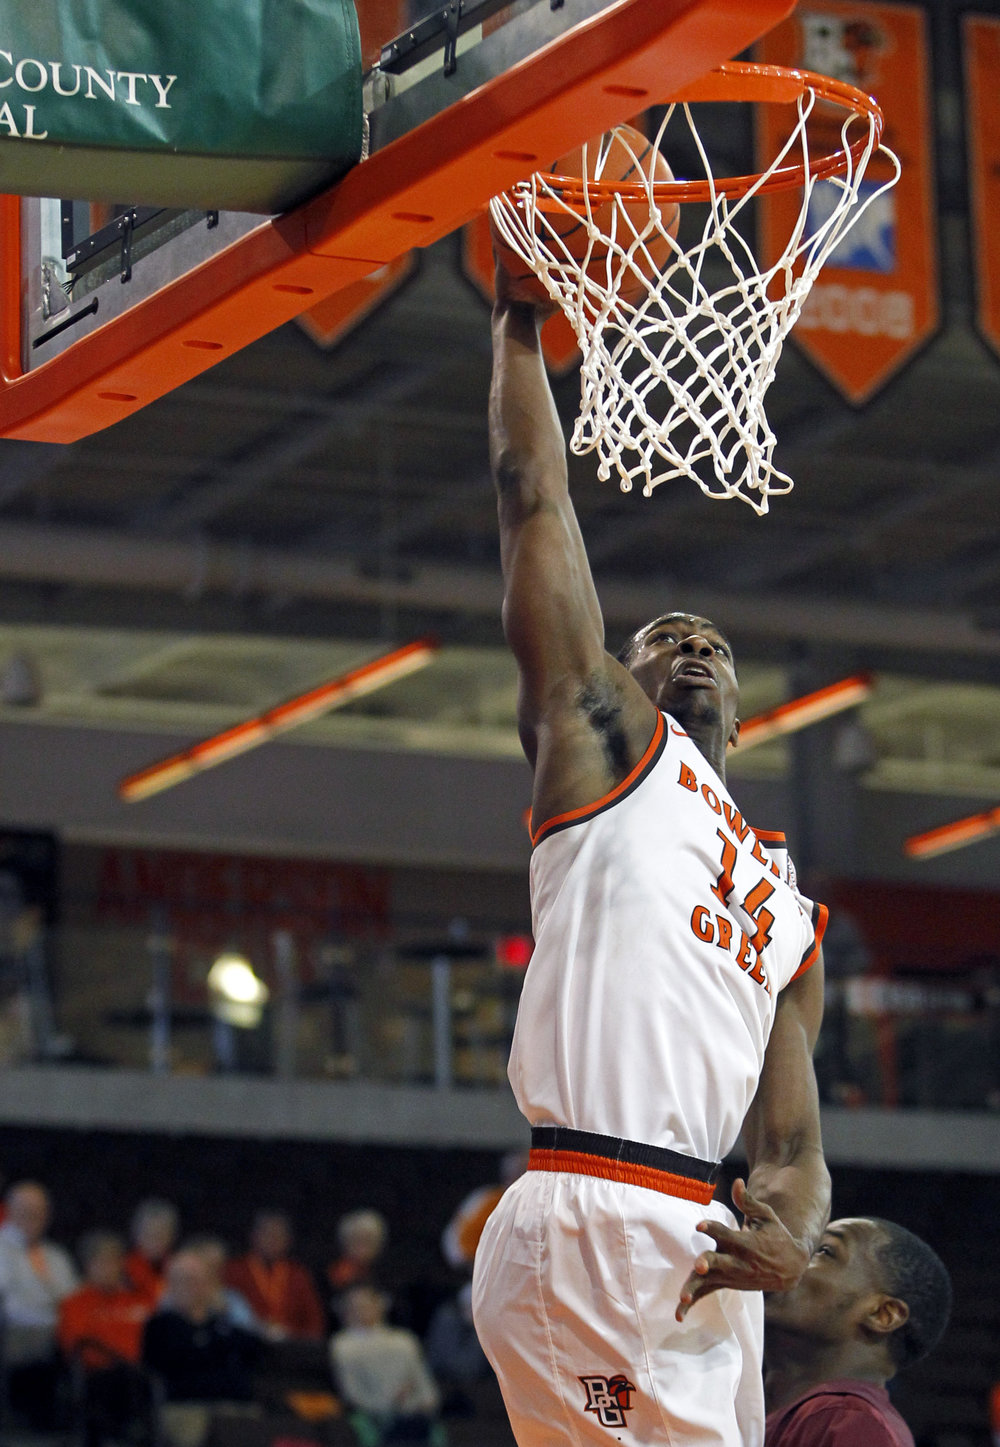 BGSU forward Wes Alcegaire (14) jumps for a slam dunk during the men's basketball game against Alabama A&M at the Stroh Center in Bowling Green, Oh. on Thursday, Dec. 22, 2016. BGSU won the game 74-61.